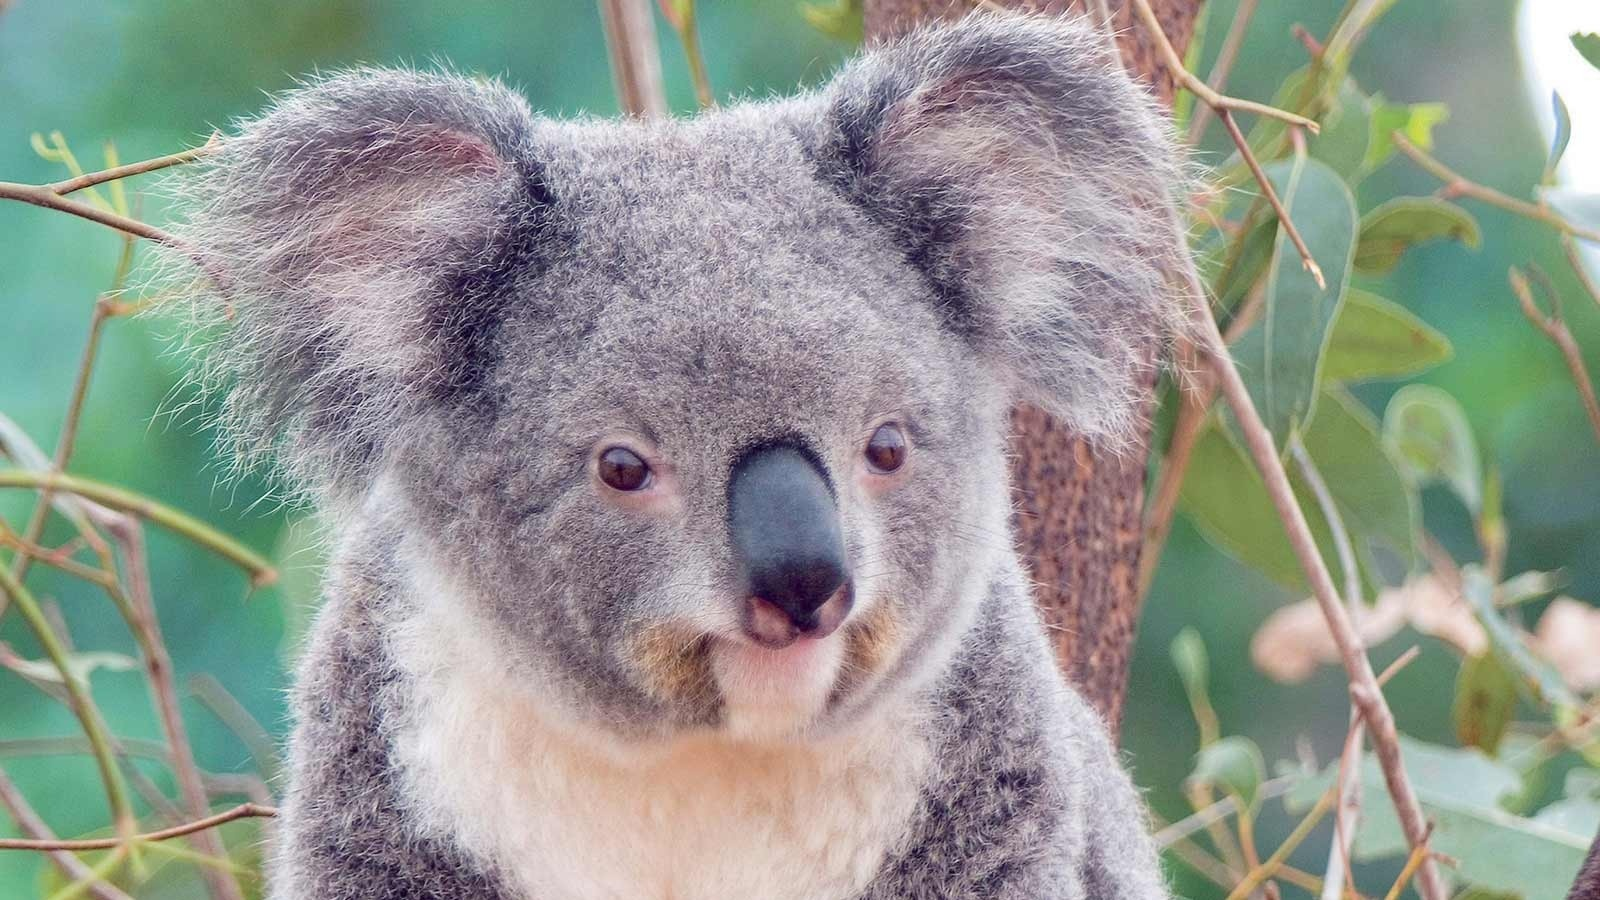 Cute koala wallpaper - 1600x900